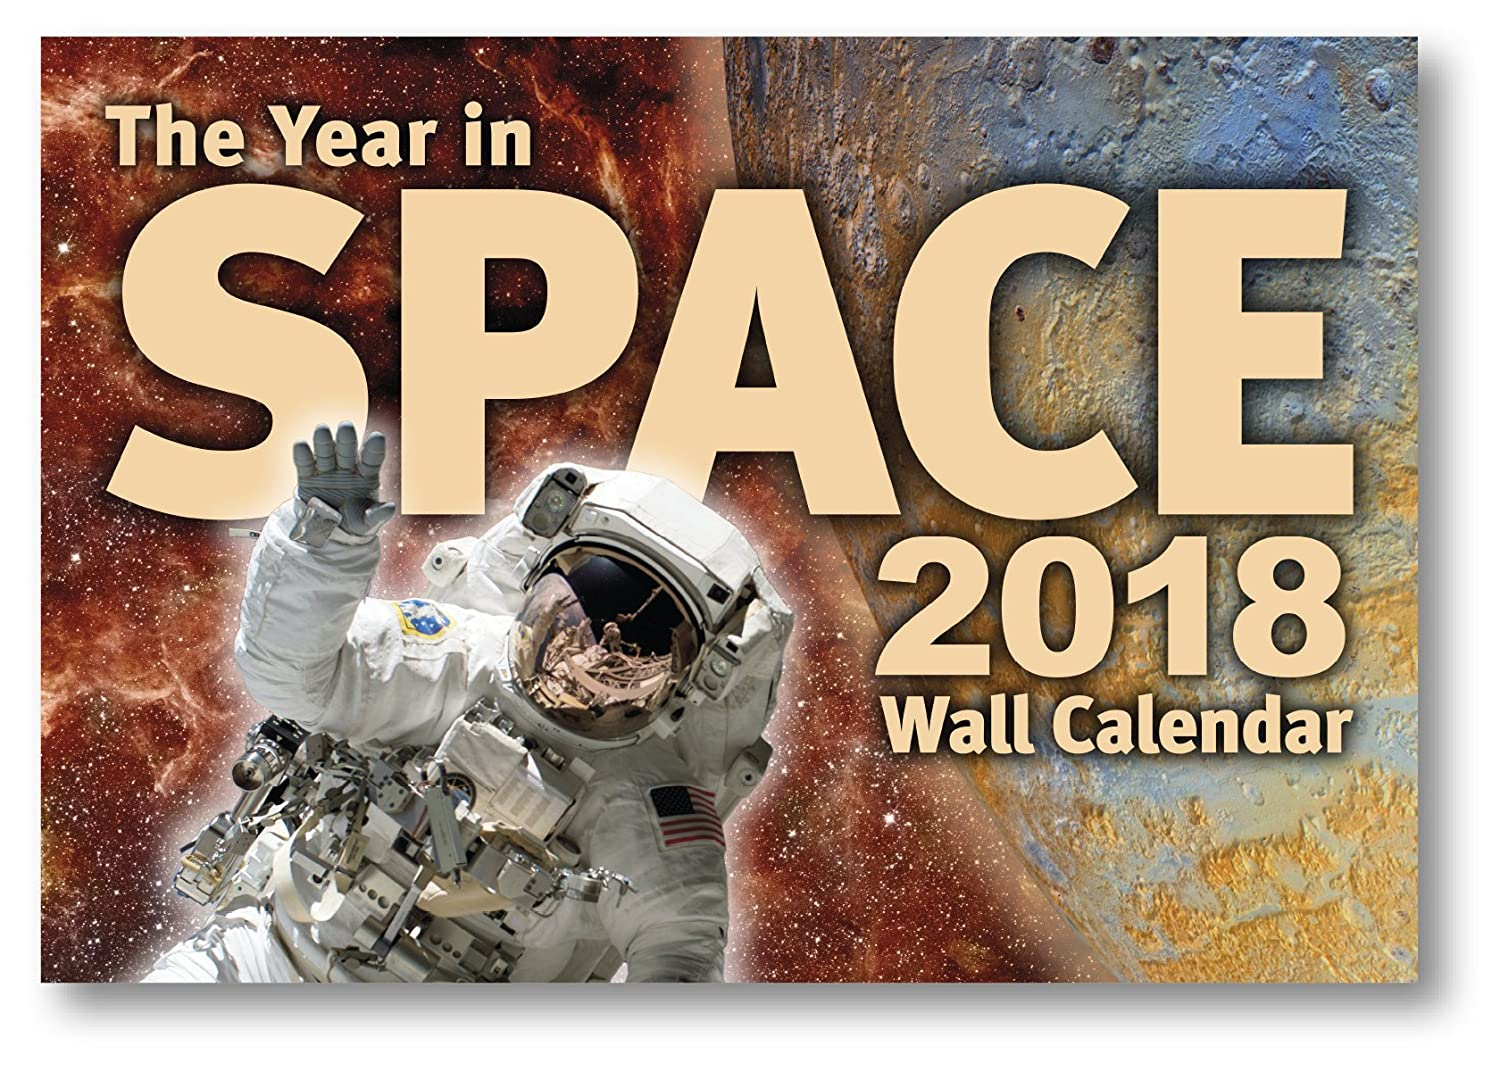 """The Year in Space 2018 Wall Calendar, Large Format 16"""" x 22"""" When Open, Over 120 Astronomy & Space Exploration Images, Moon Phases, Space History, Sky Events"""